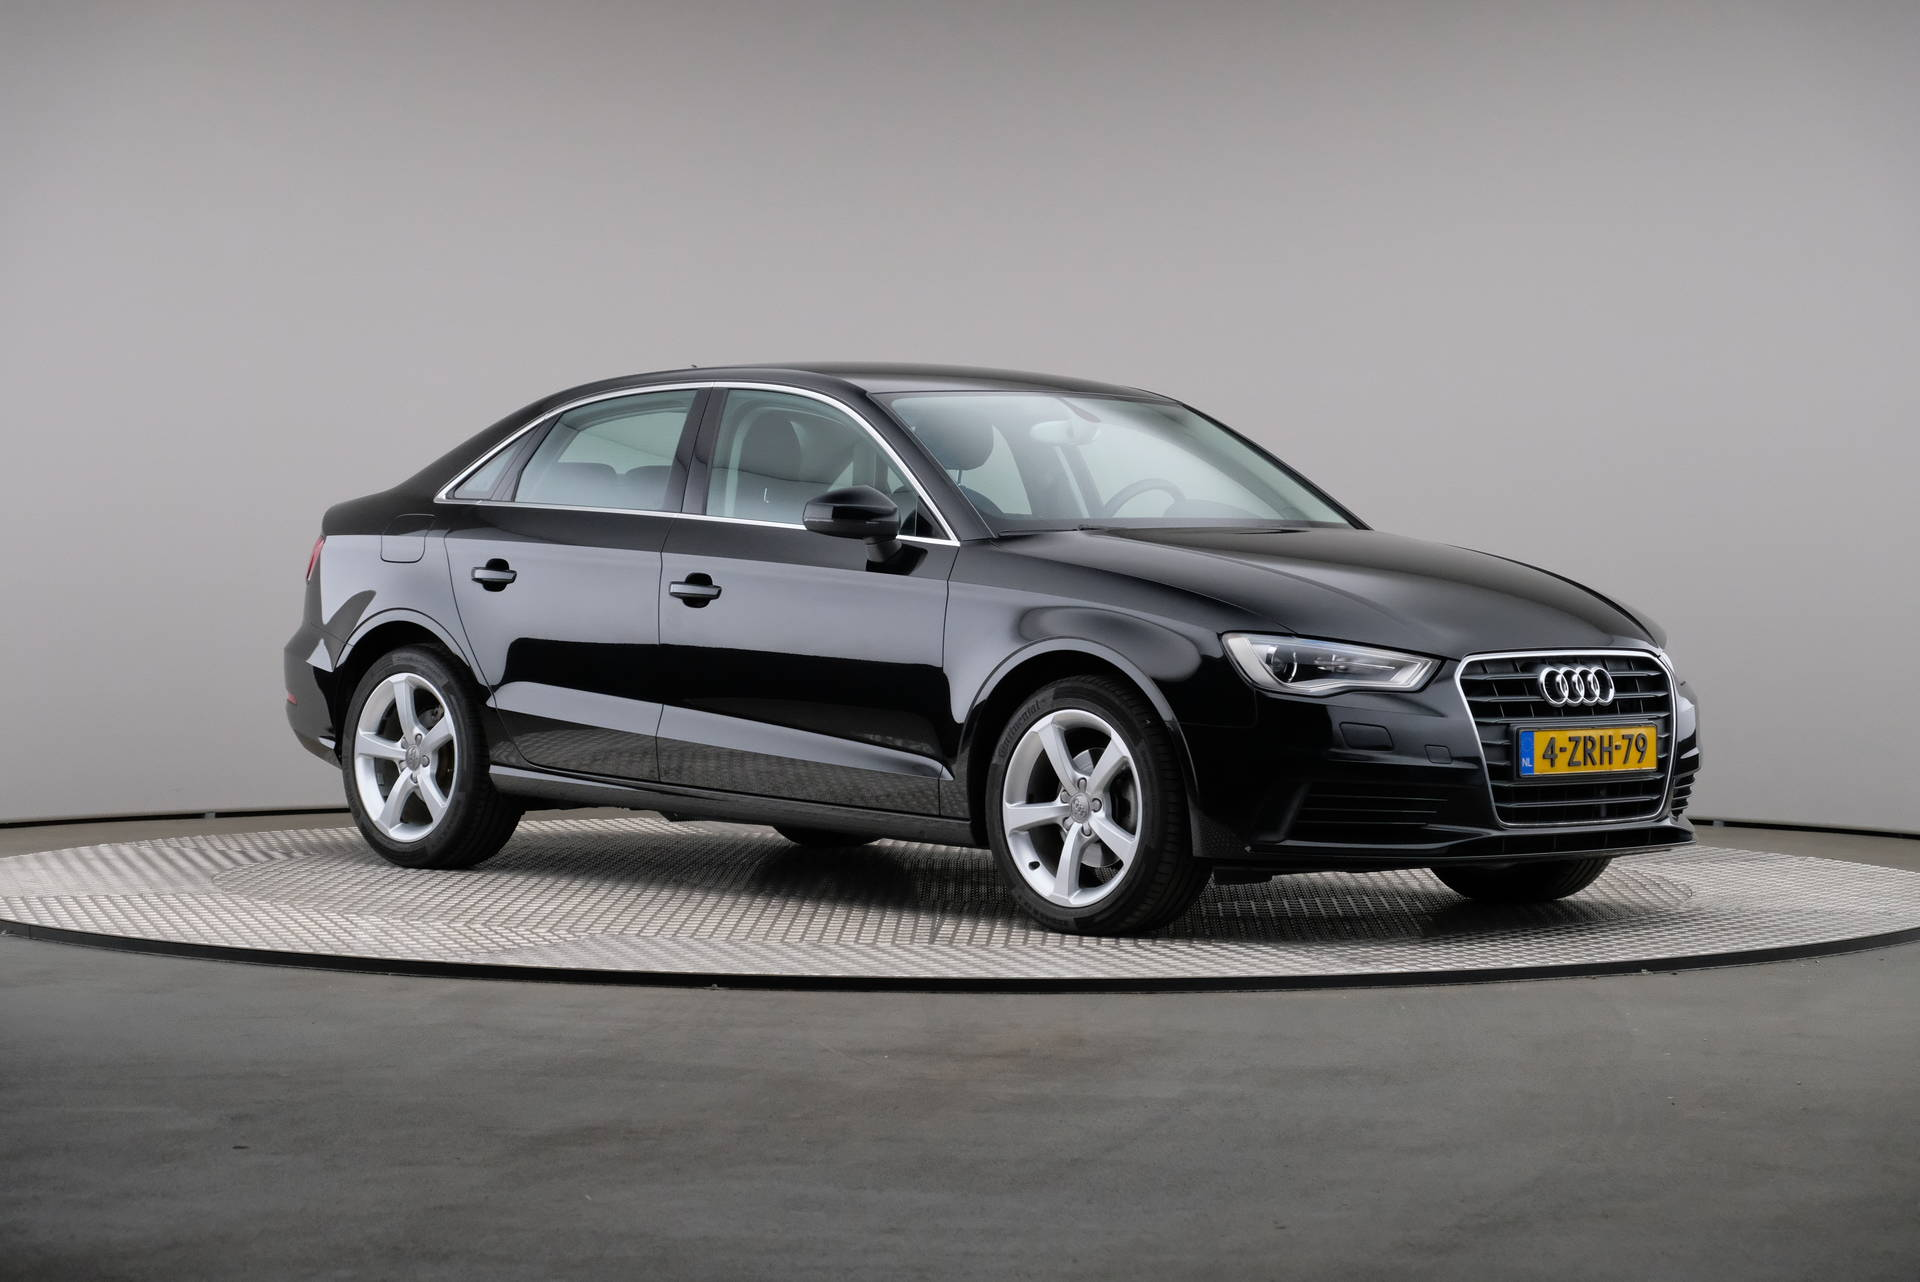 Audi A3 Limousine 1.6 TDI Attraction Pro Line Plus, Navigatie, Xenon, 360-image28